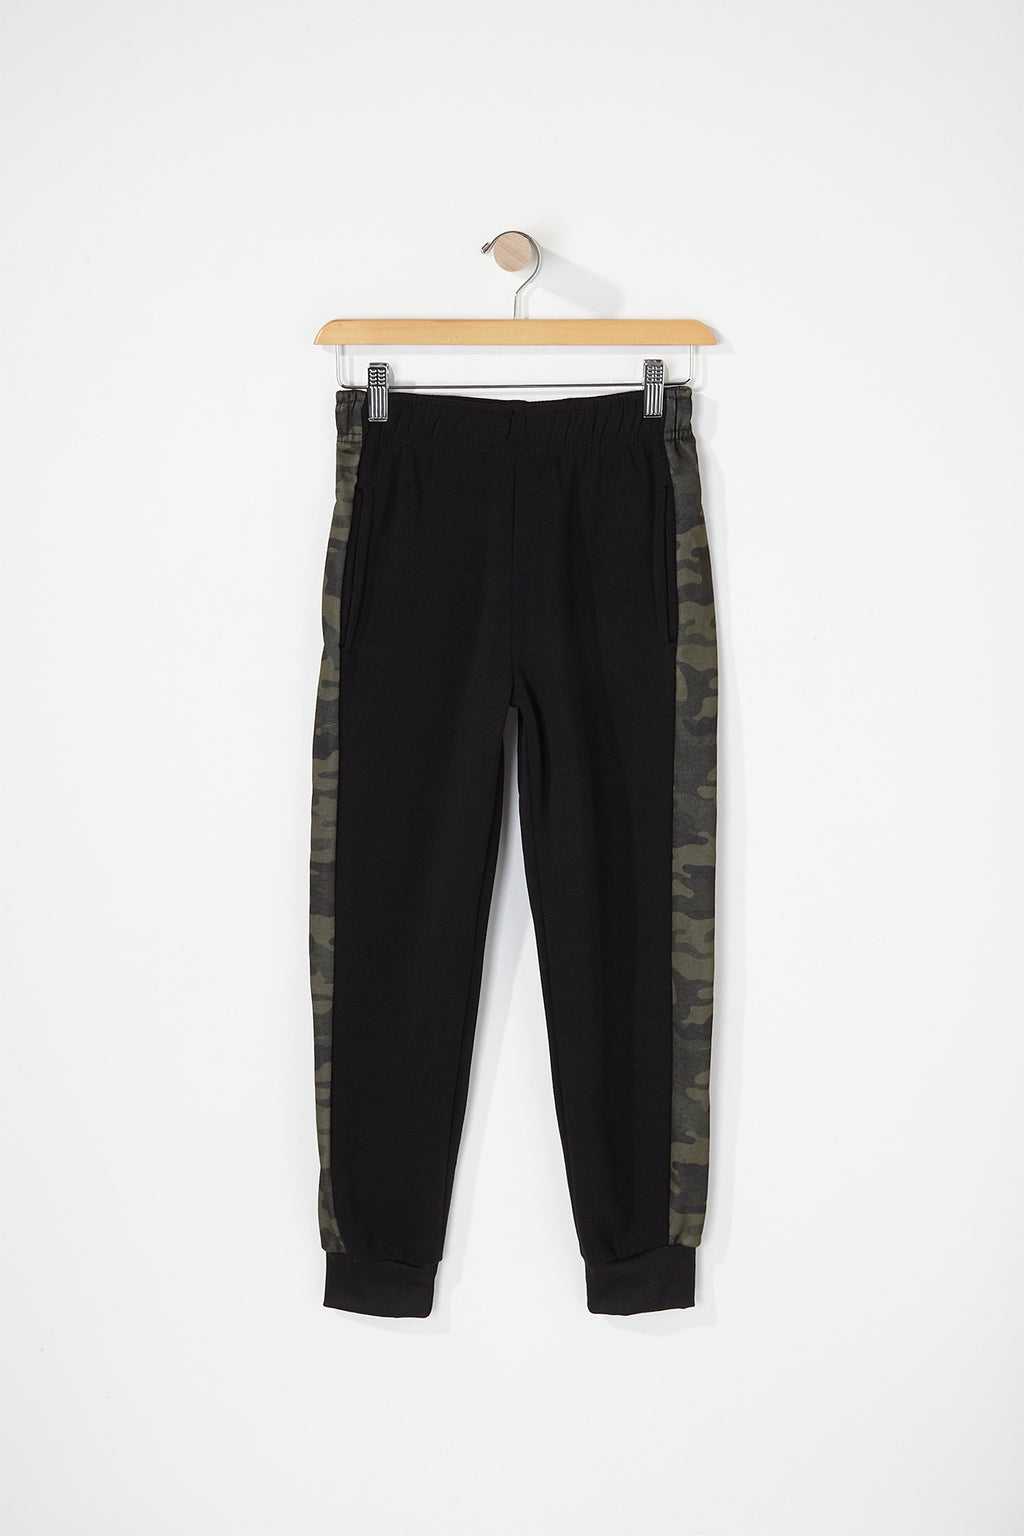 West49 Boys Camo Side Joggers